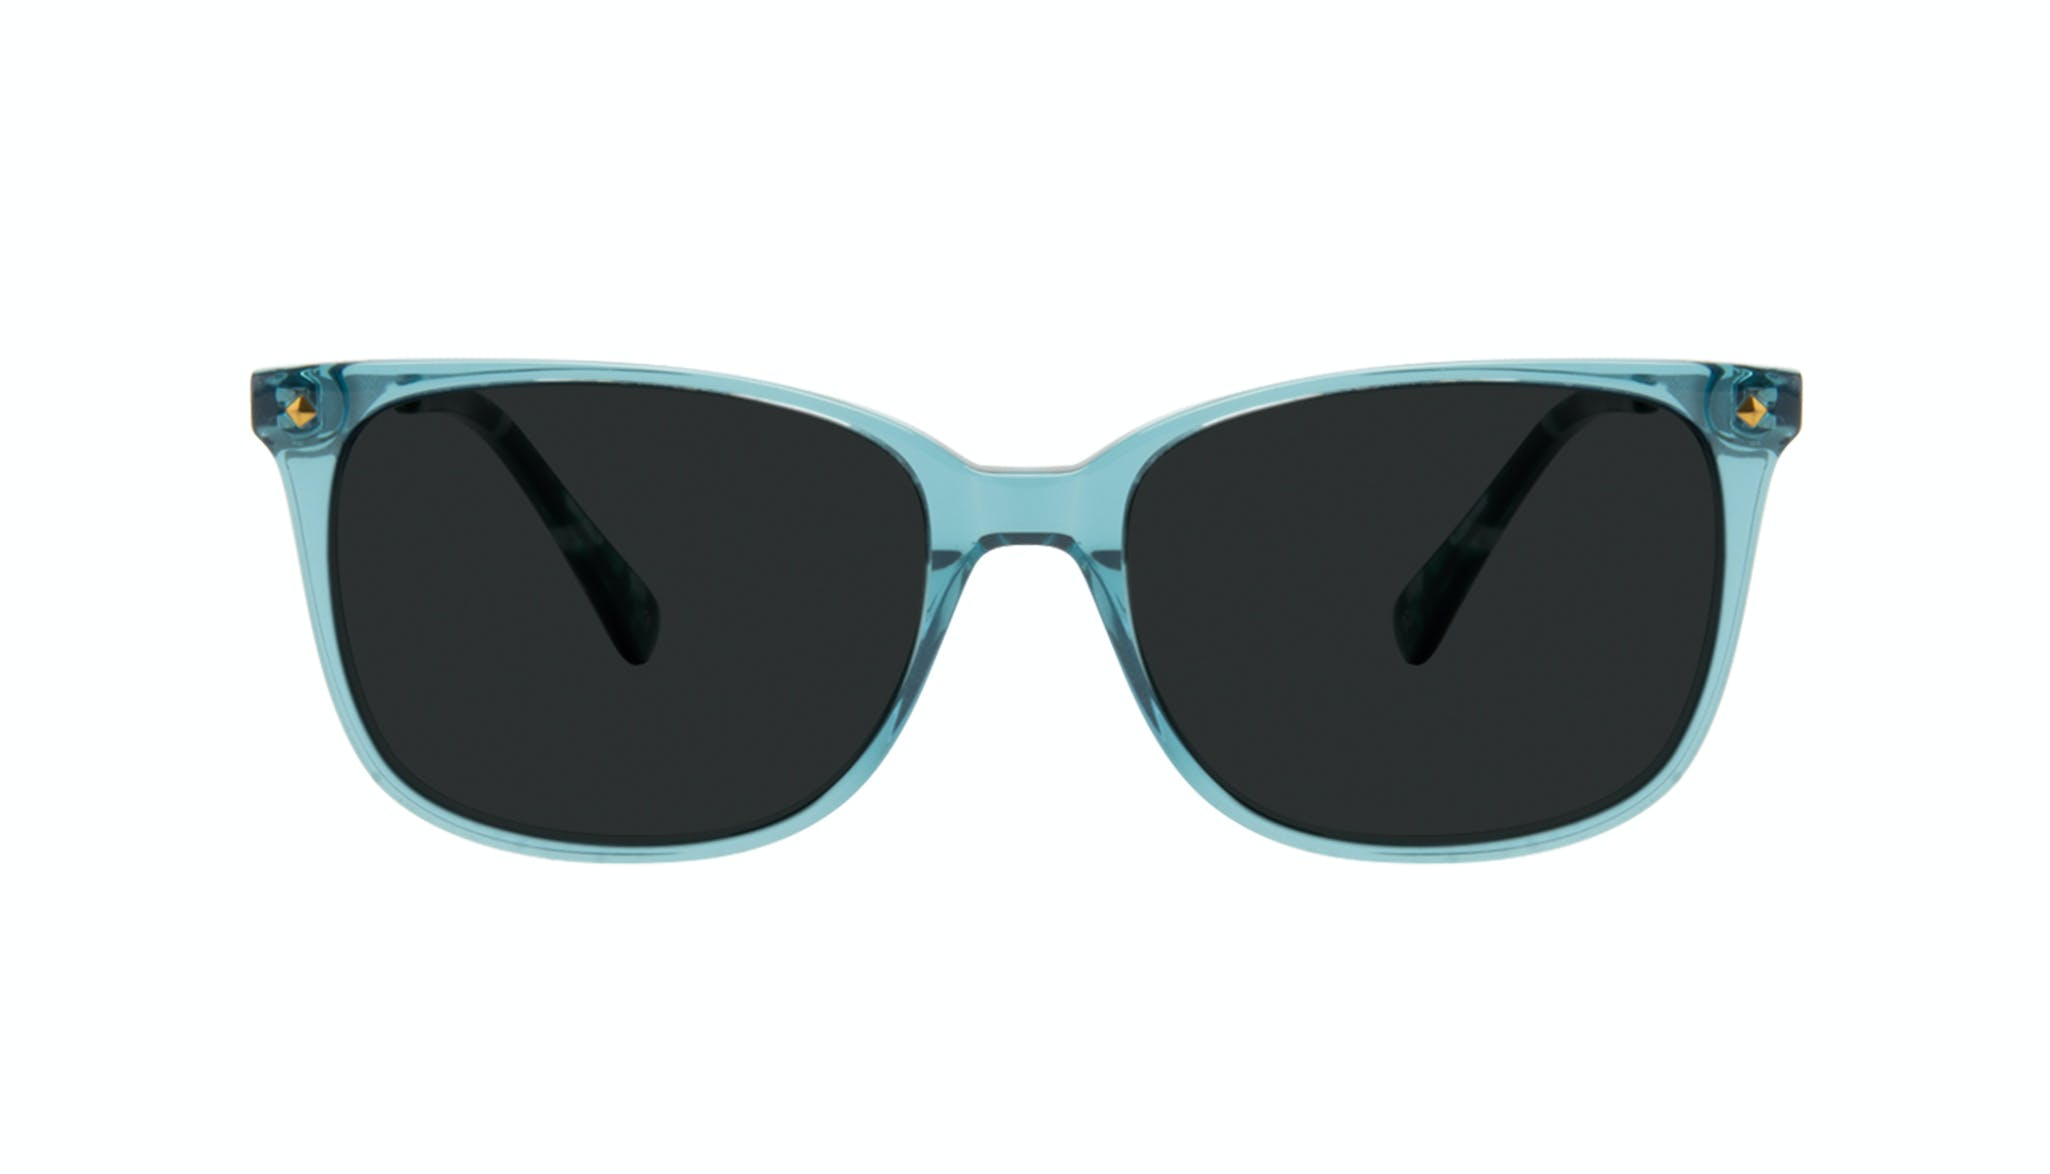 Affordable Fashion Glasses Rectangle Square Sunglasses Women Refine Teal